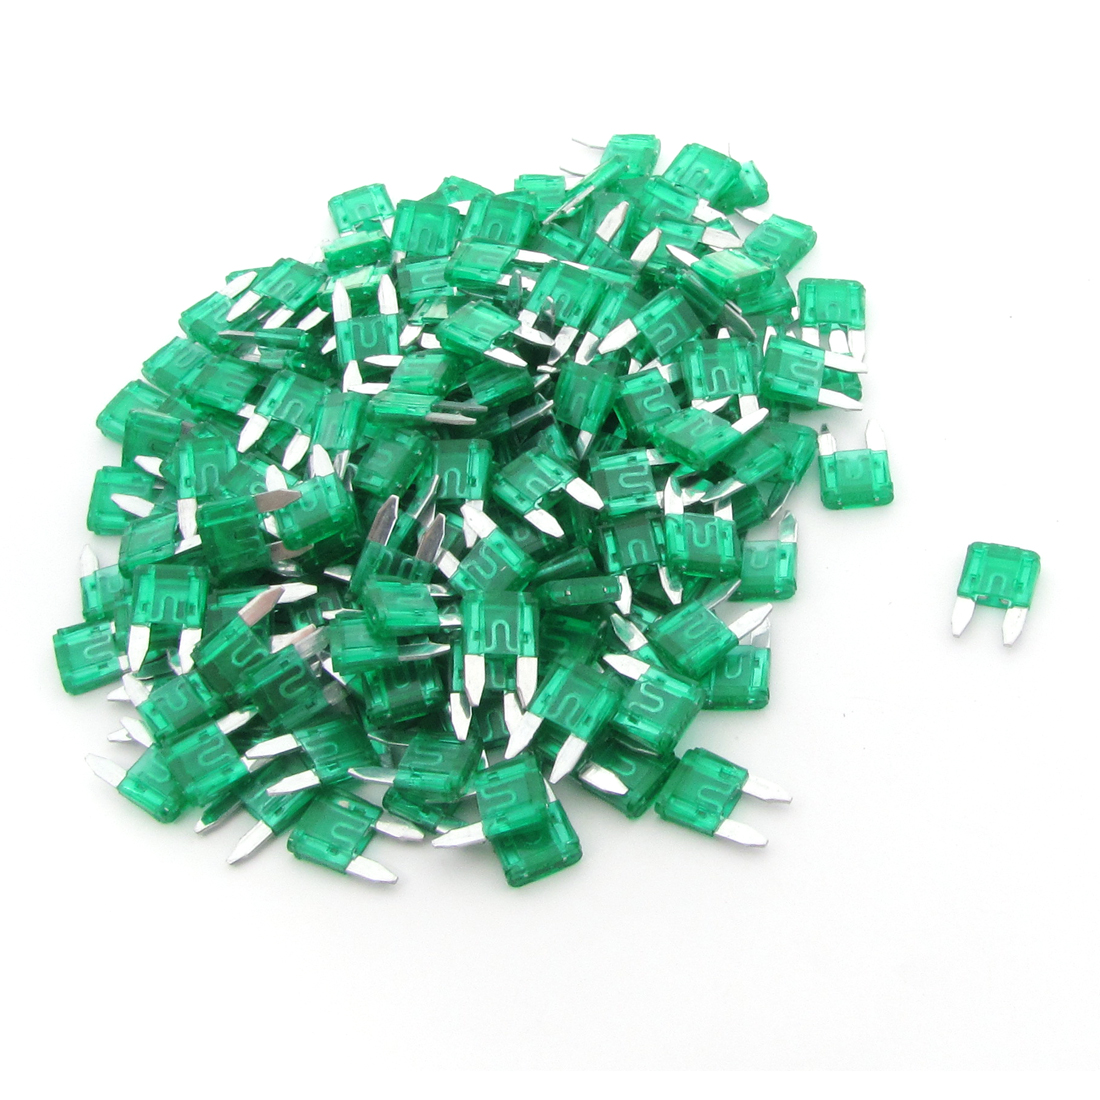 200 Pcs Automotive Car Boat Truck 30A Small Size Blade Fuse Green